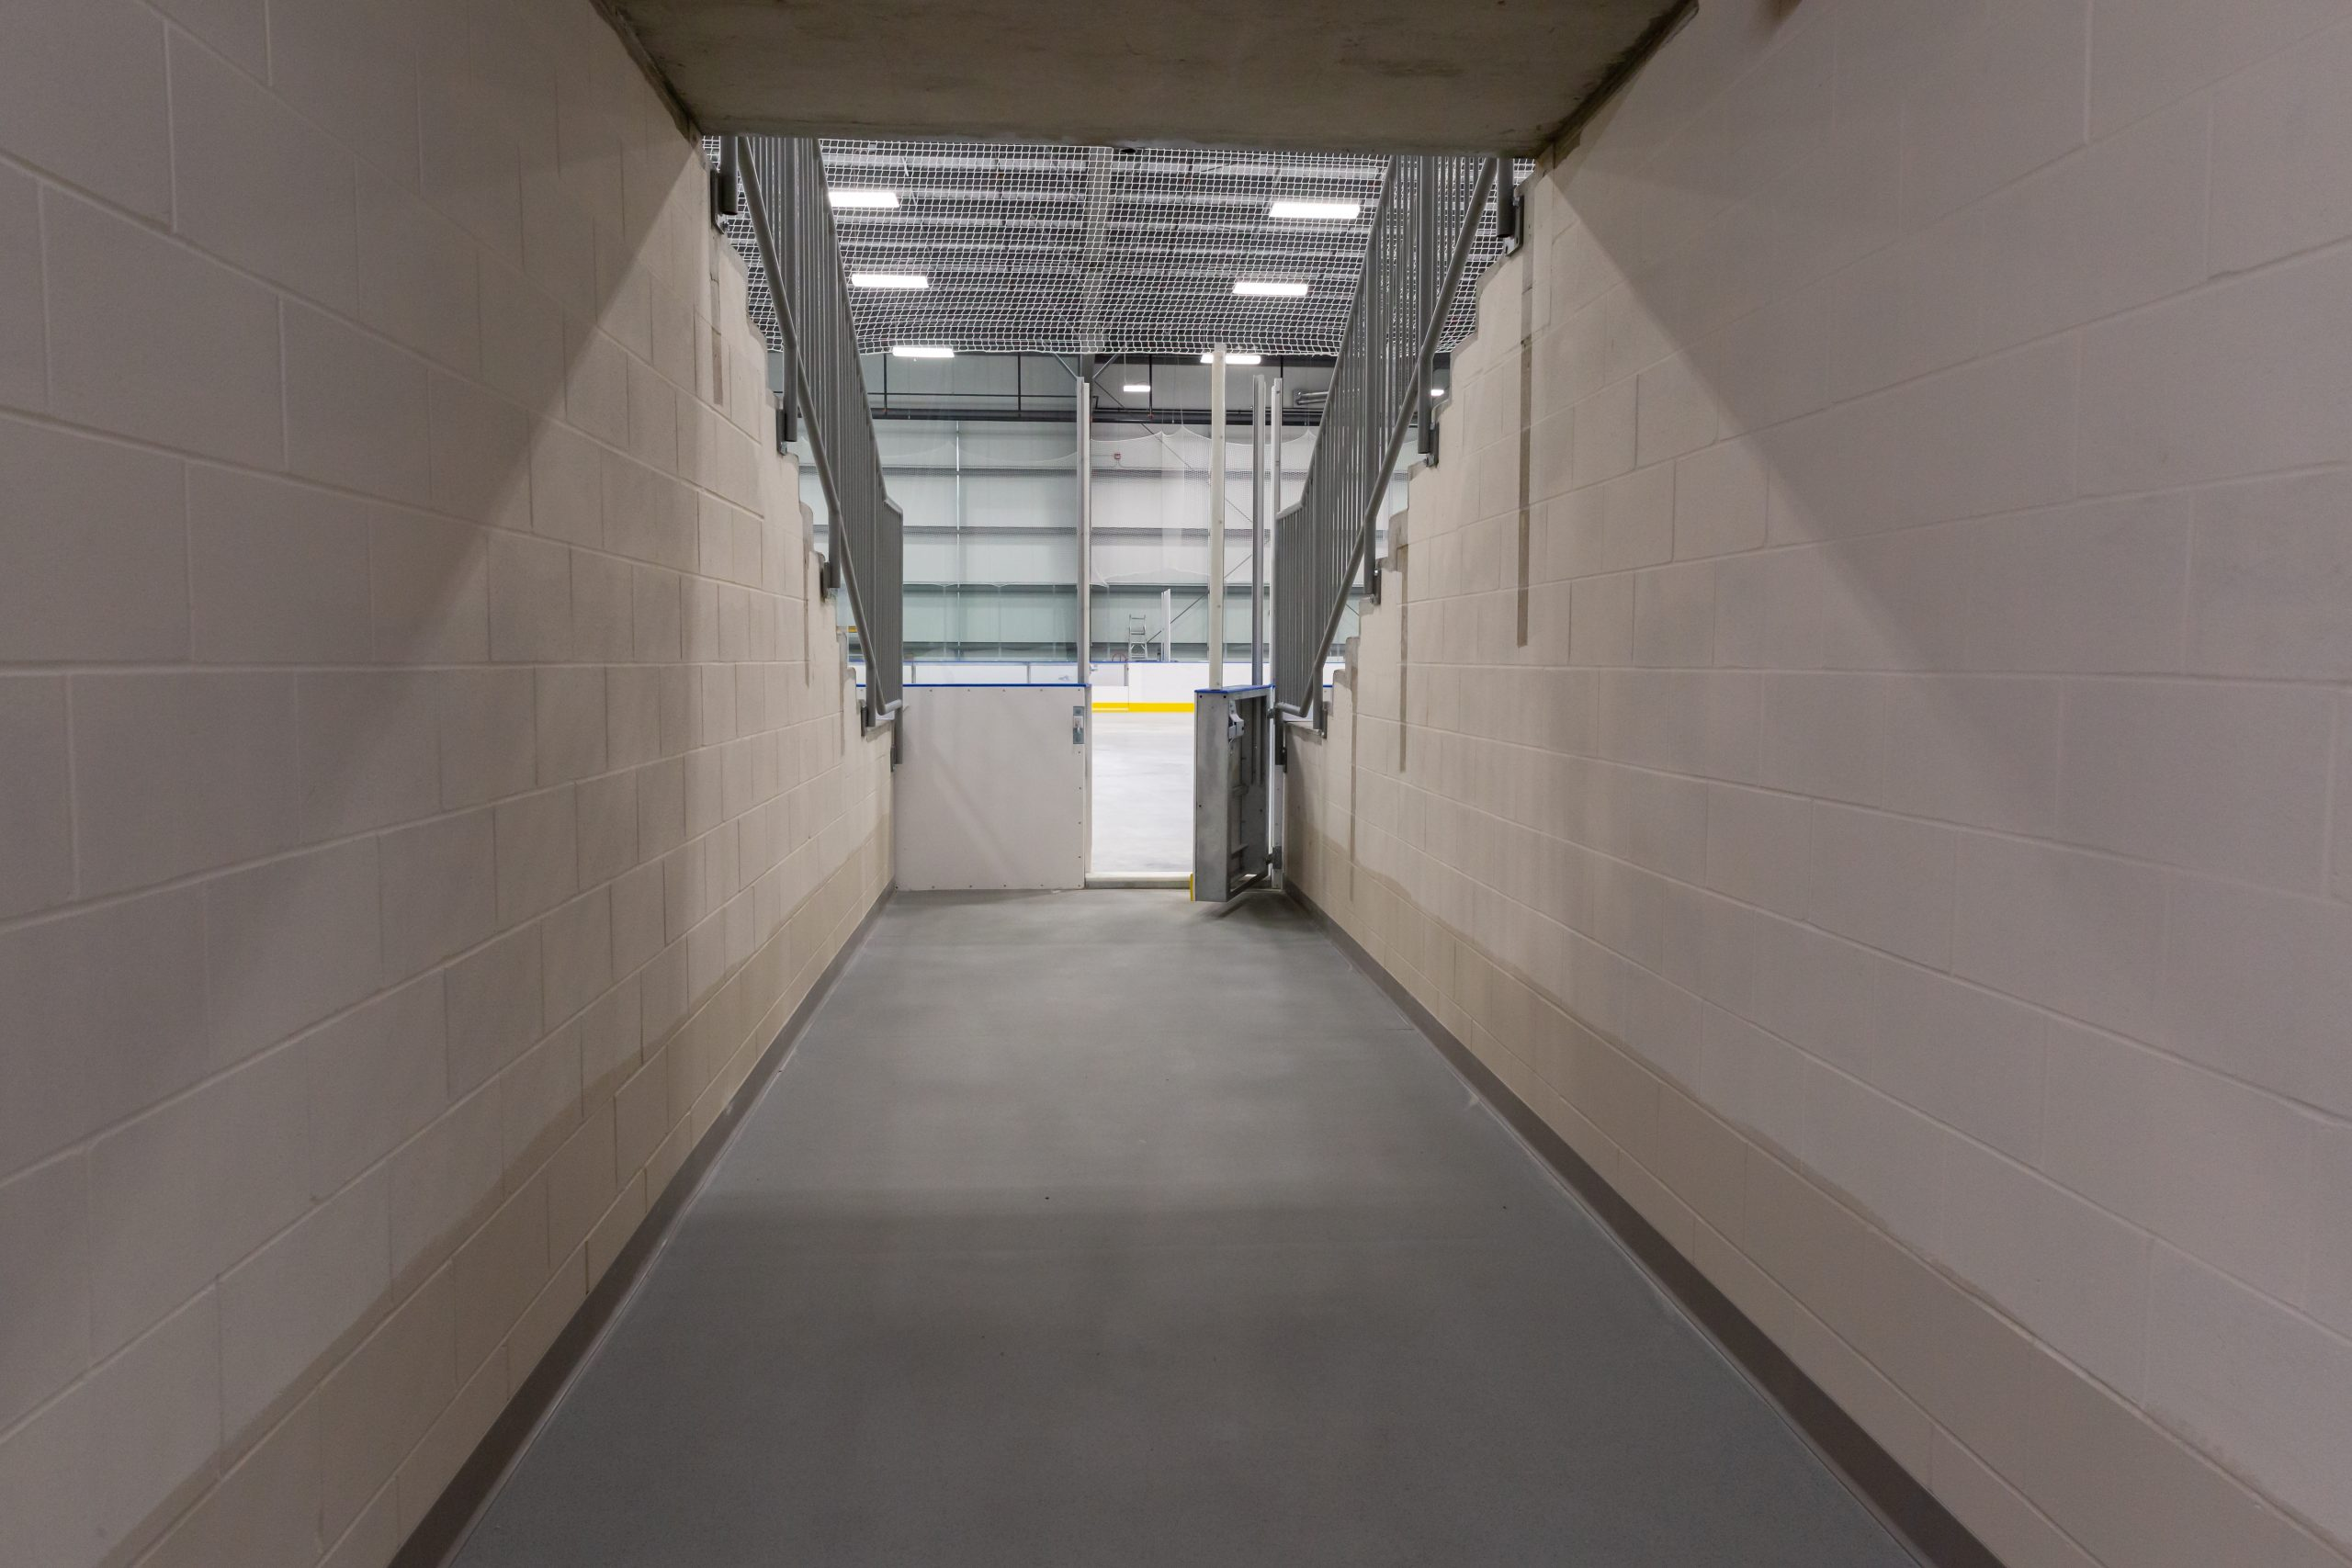 July 2021 - Tunnel in Arena